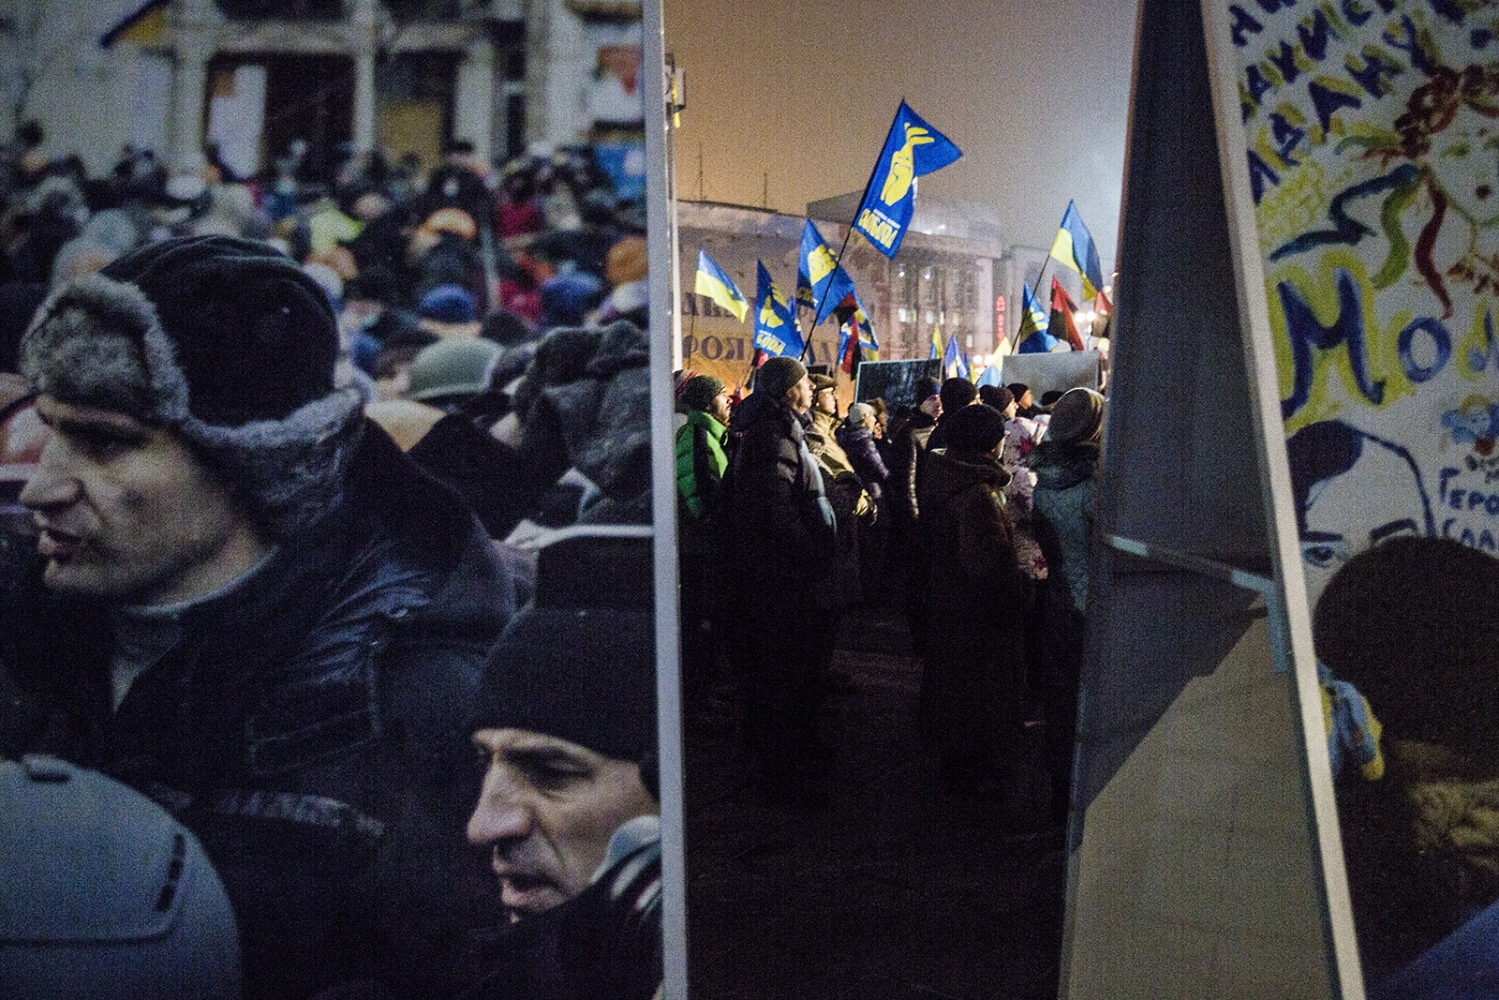 Commemoration for Bandera in Maidan square, 1 of January 2015